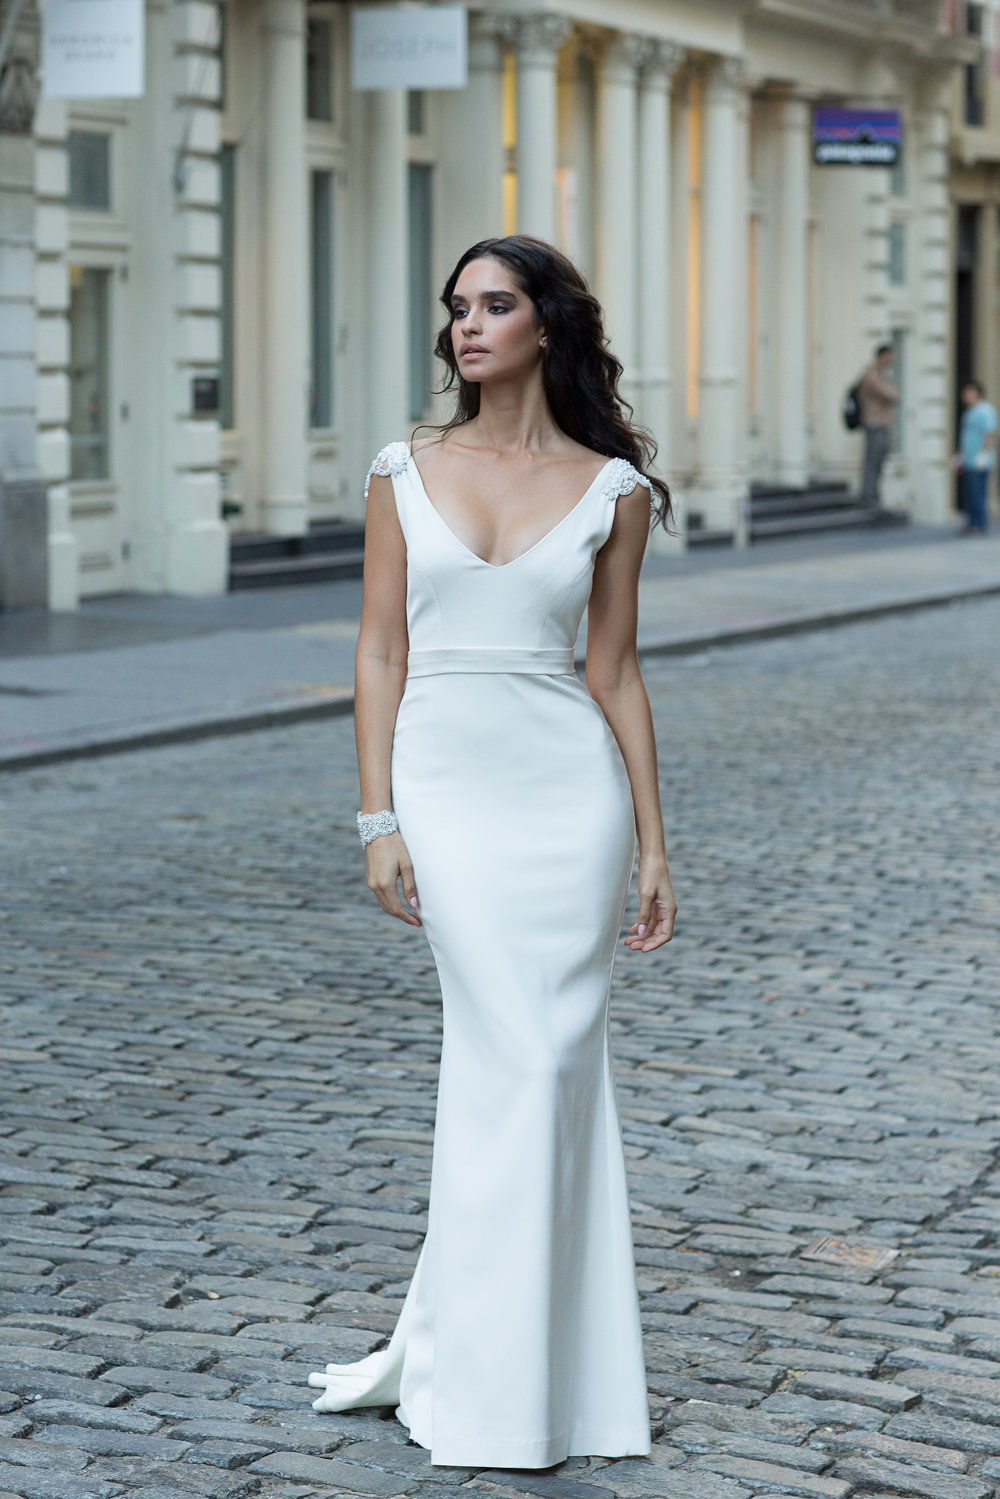 Dorable Wedding Dress Dream Image Collection - Wedding Dress ...